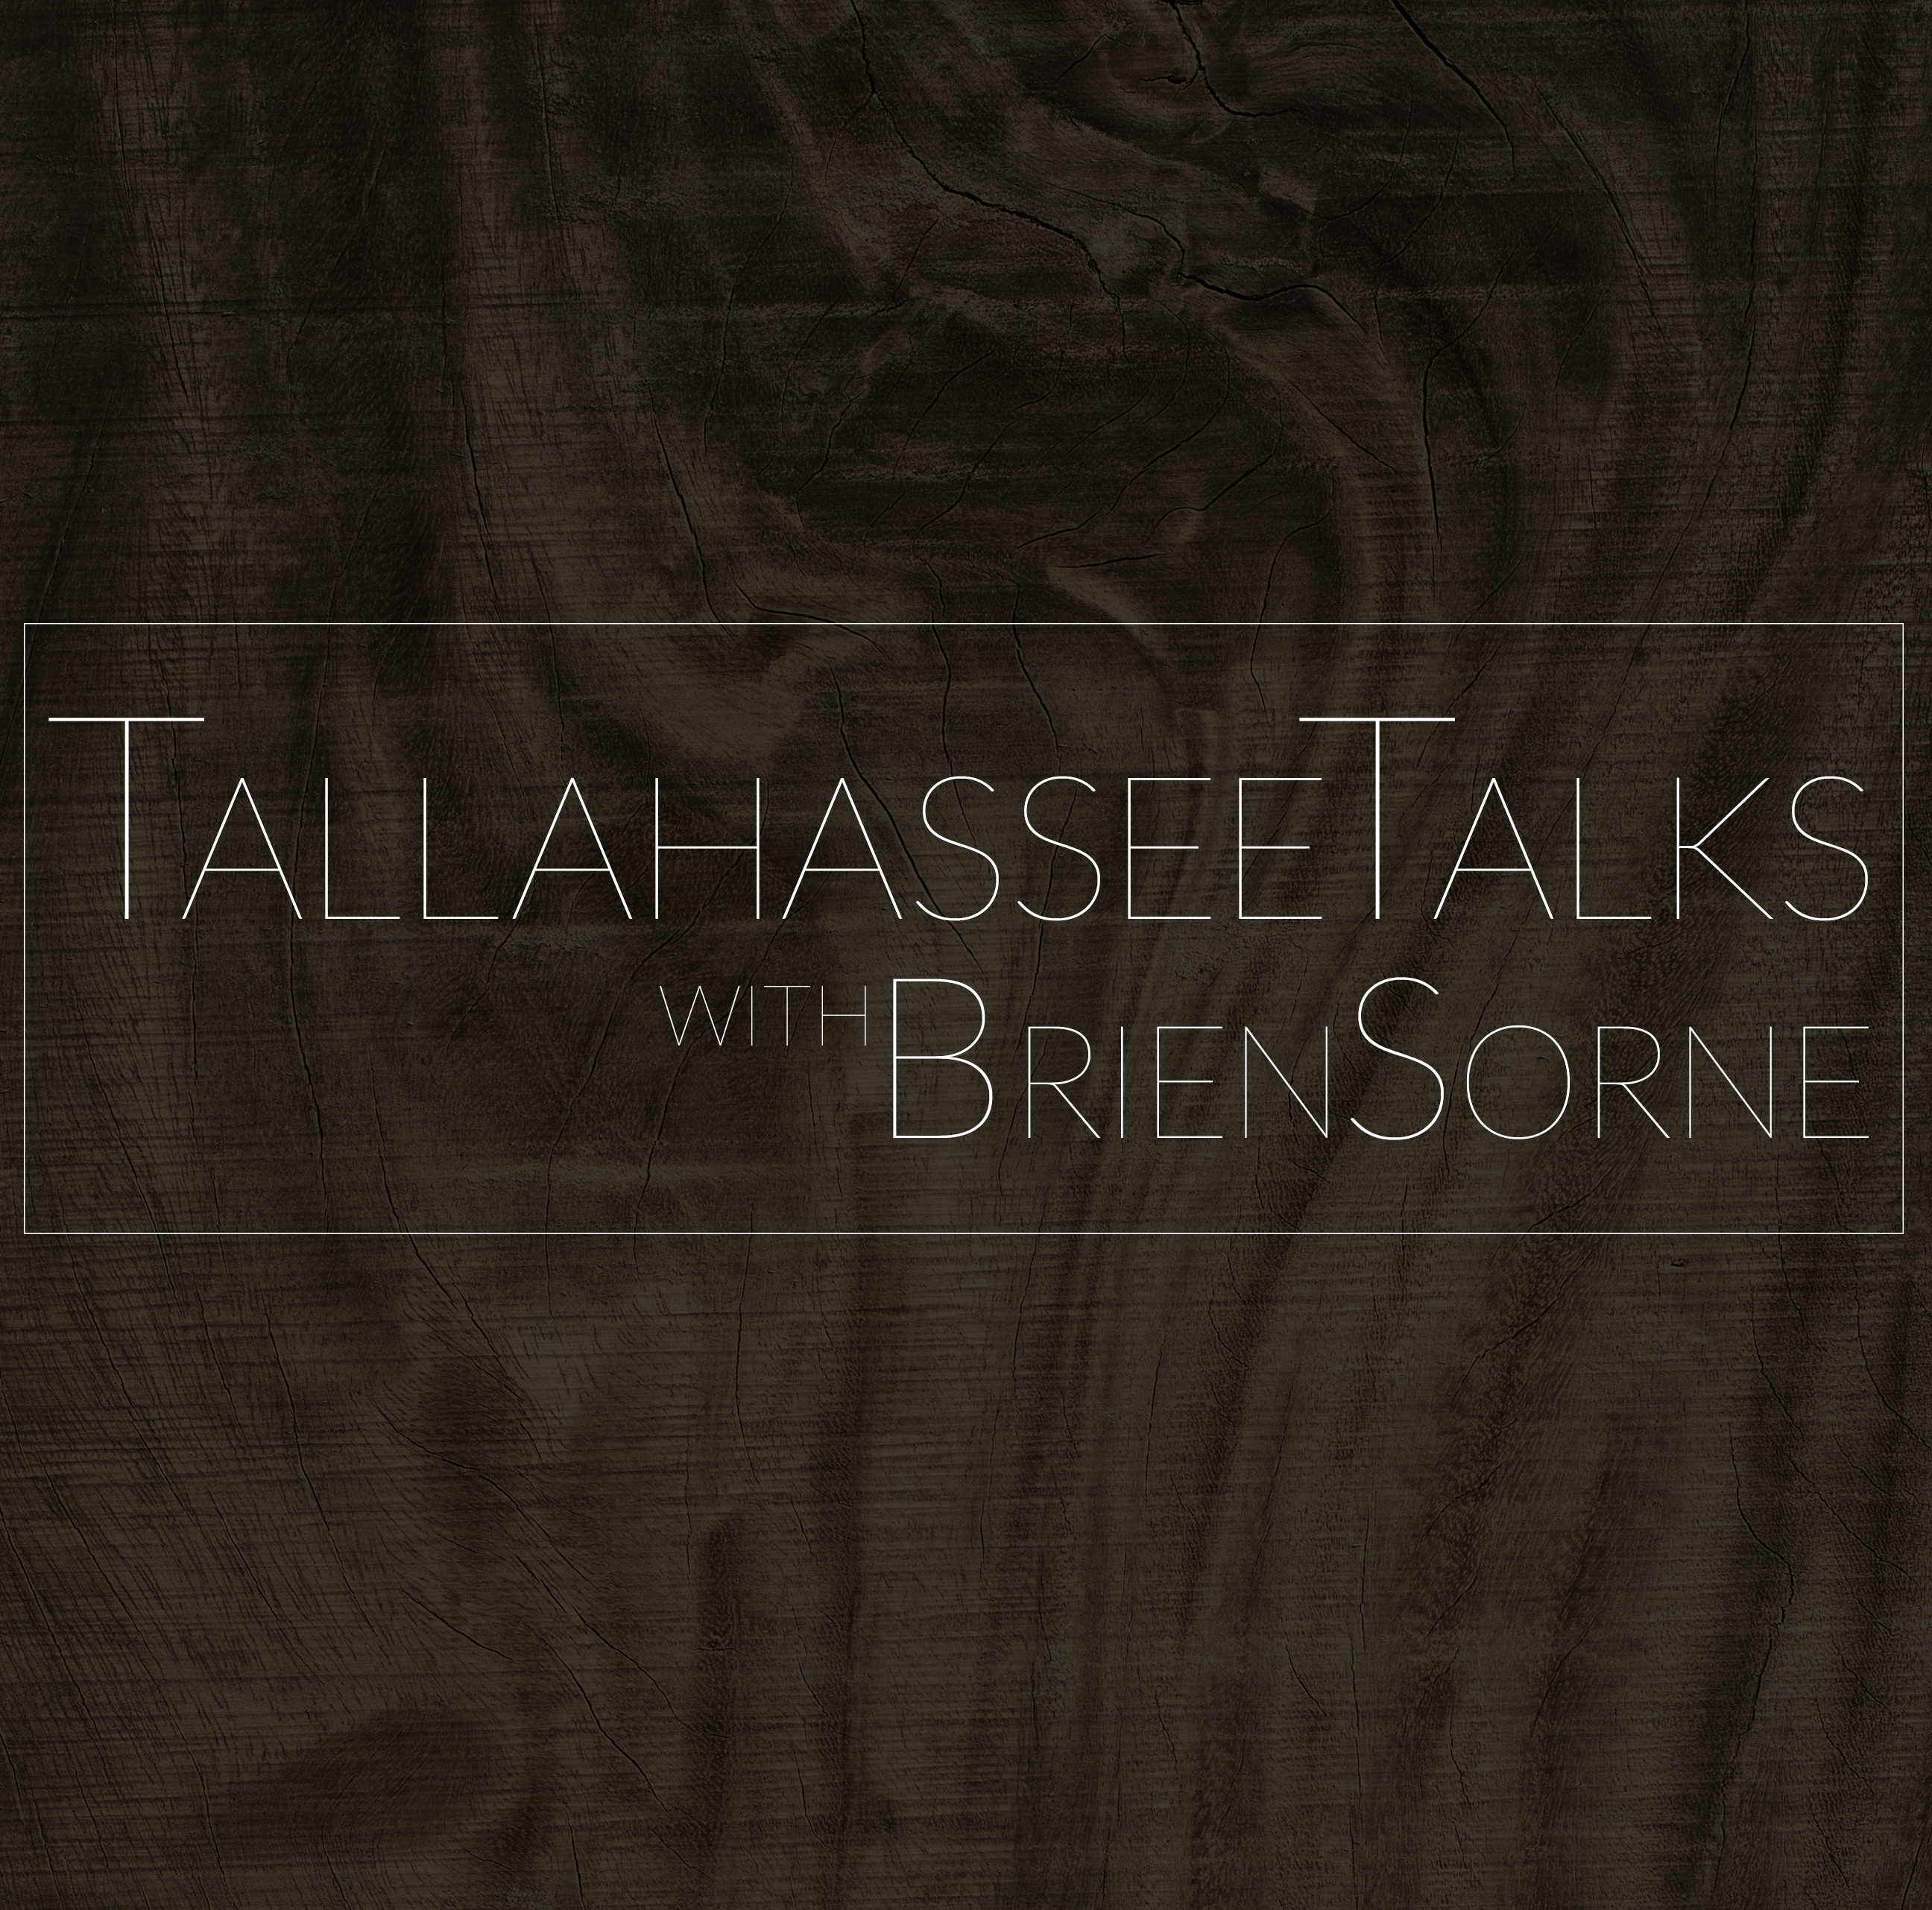 "<a href=""http://www.tallahasseetalks.com"" target=""_blank"">Tallahassee Talks with Brien Sorne</a>"